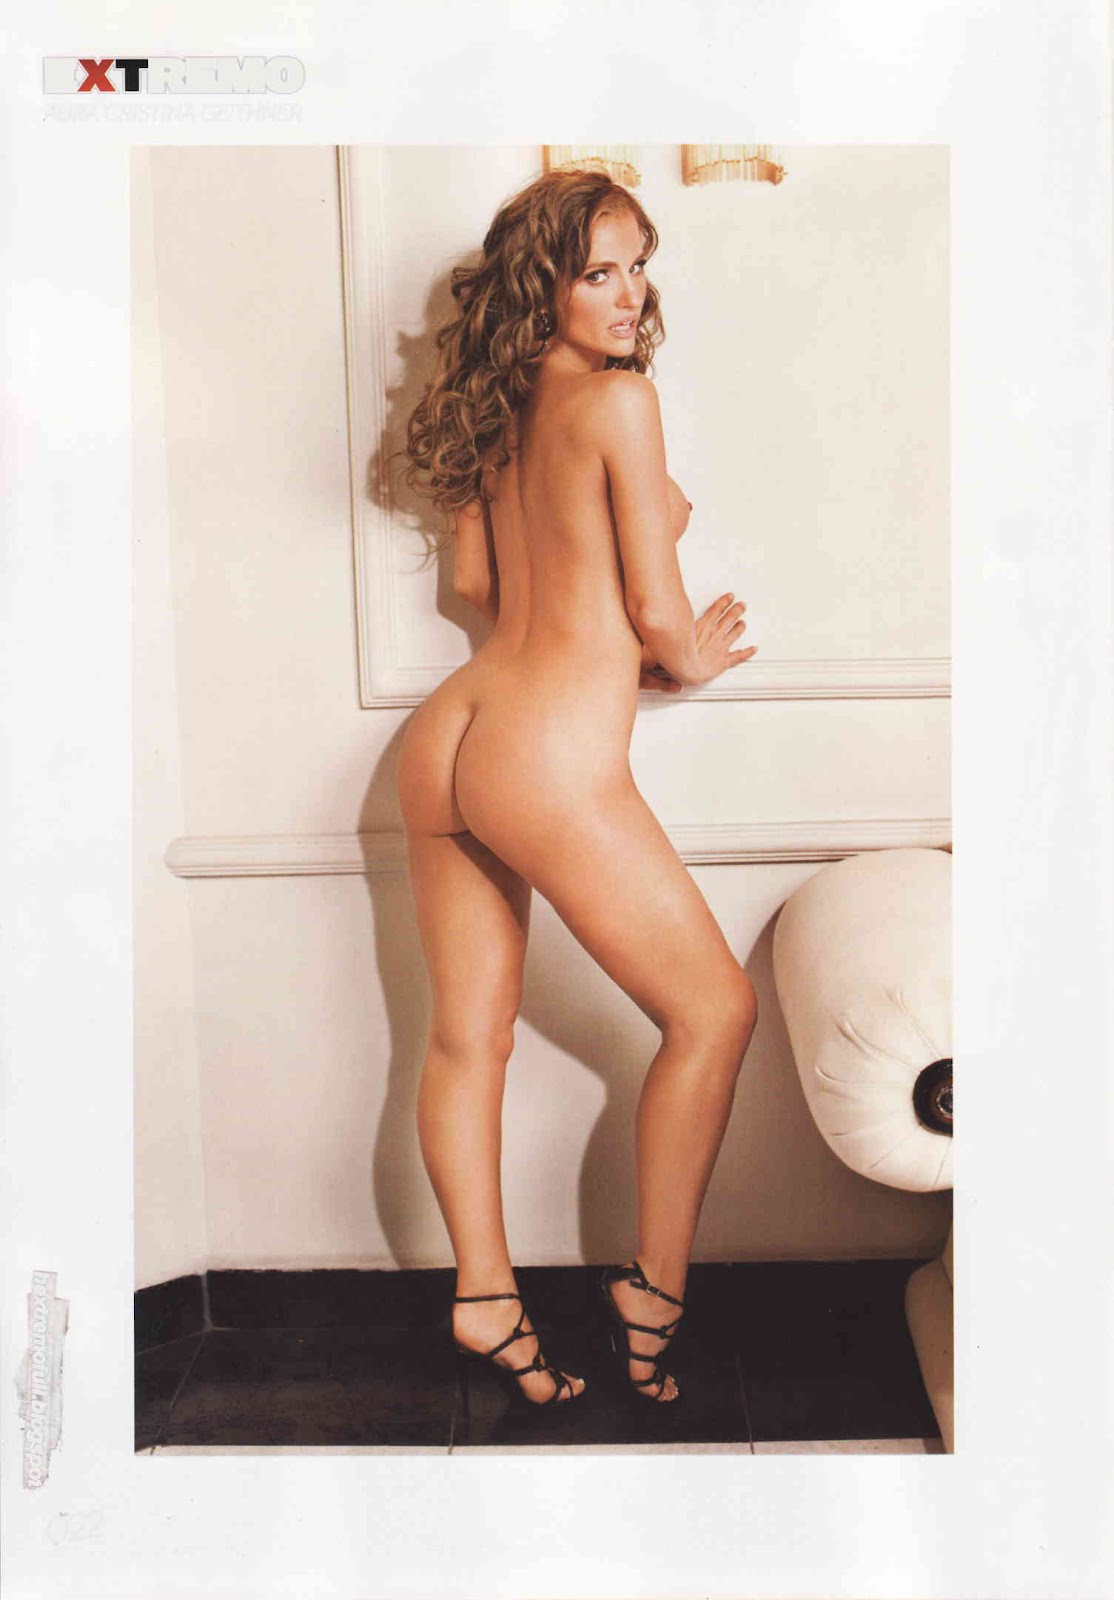 Naked pics of famous hollywood girls